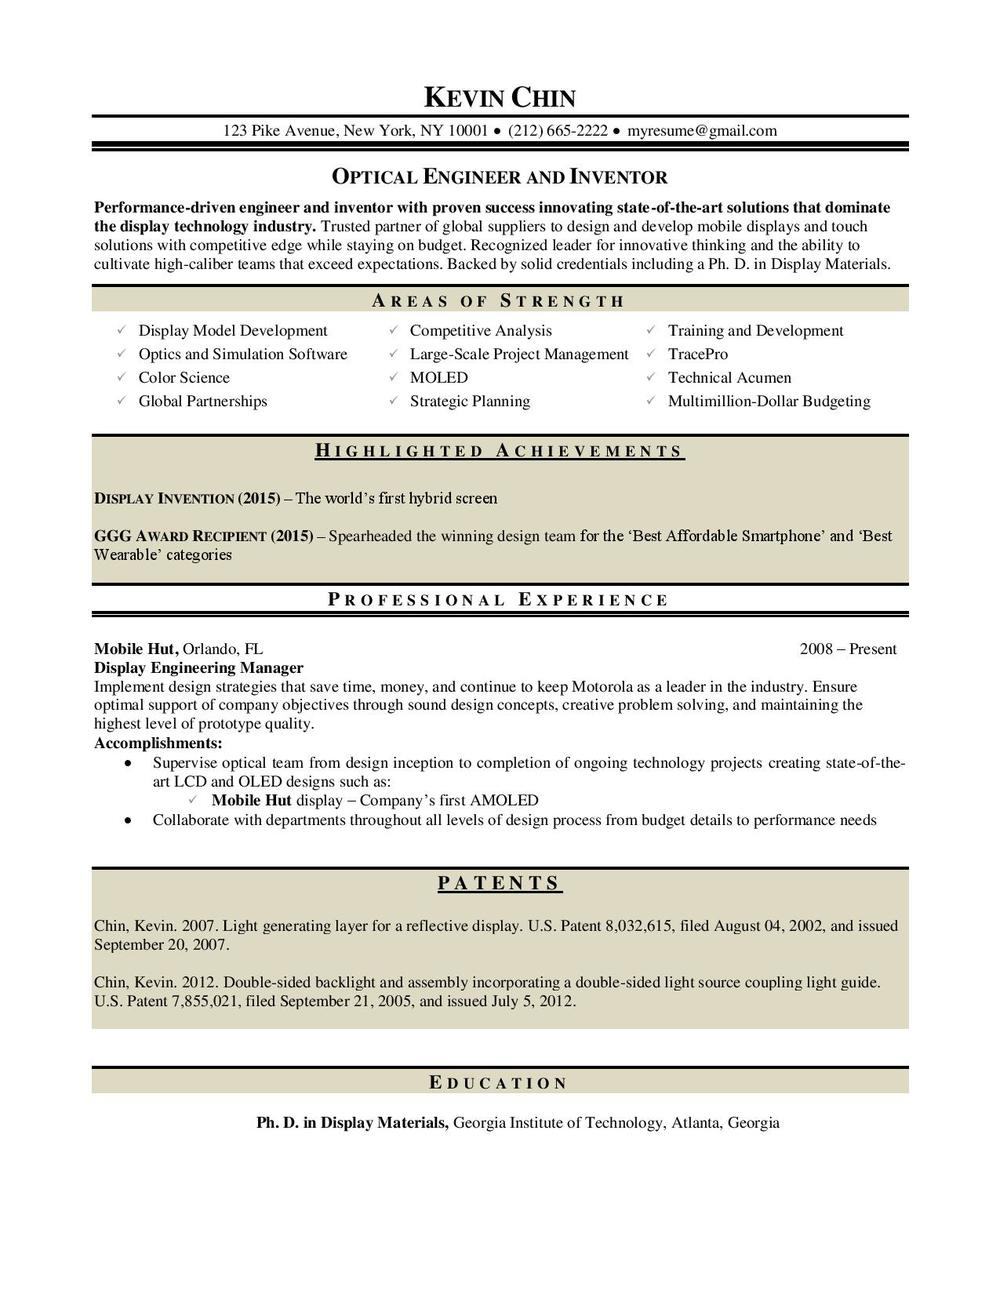 Philanthropedia Custom Research certified professional resume ...